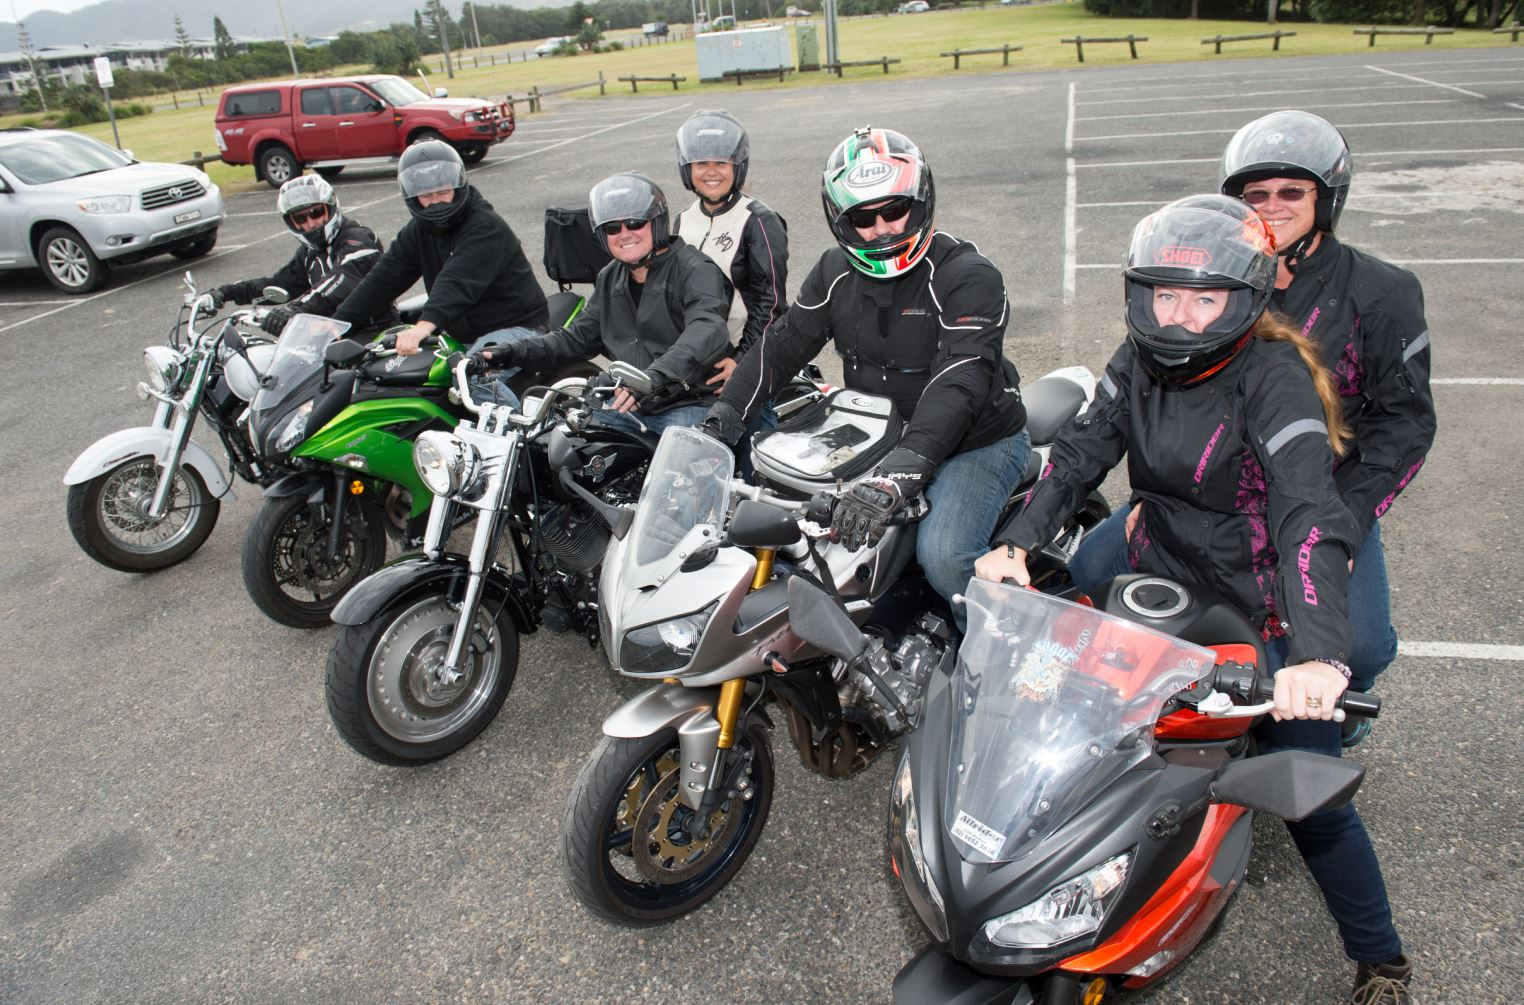 The Coastal Riders are ready to roll and raise funds for charity this weekend.